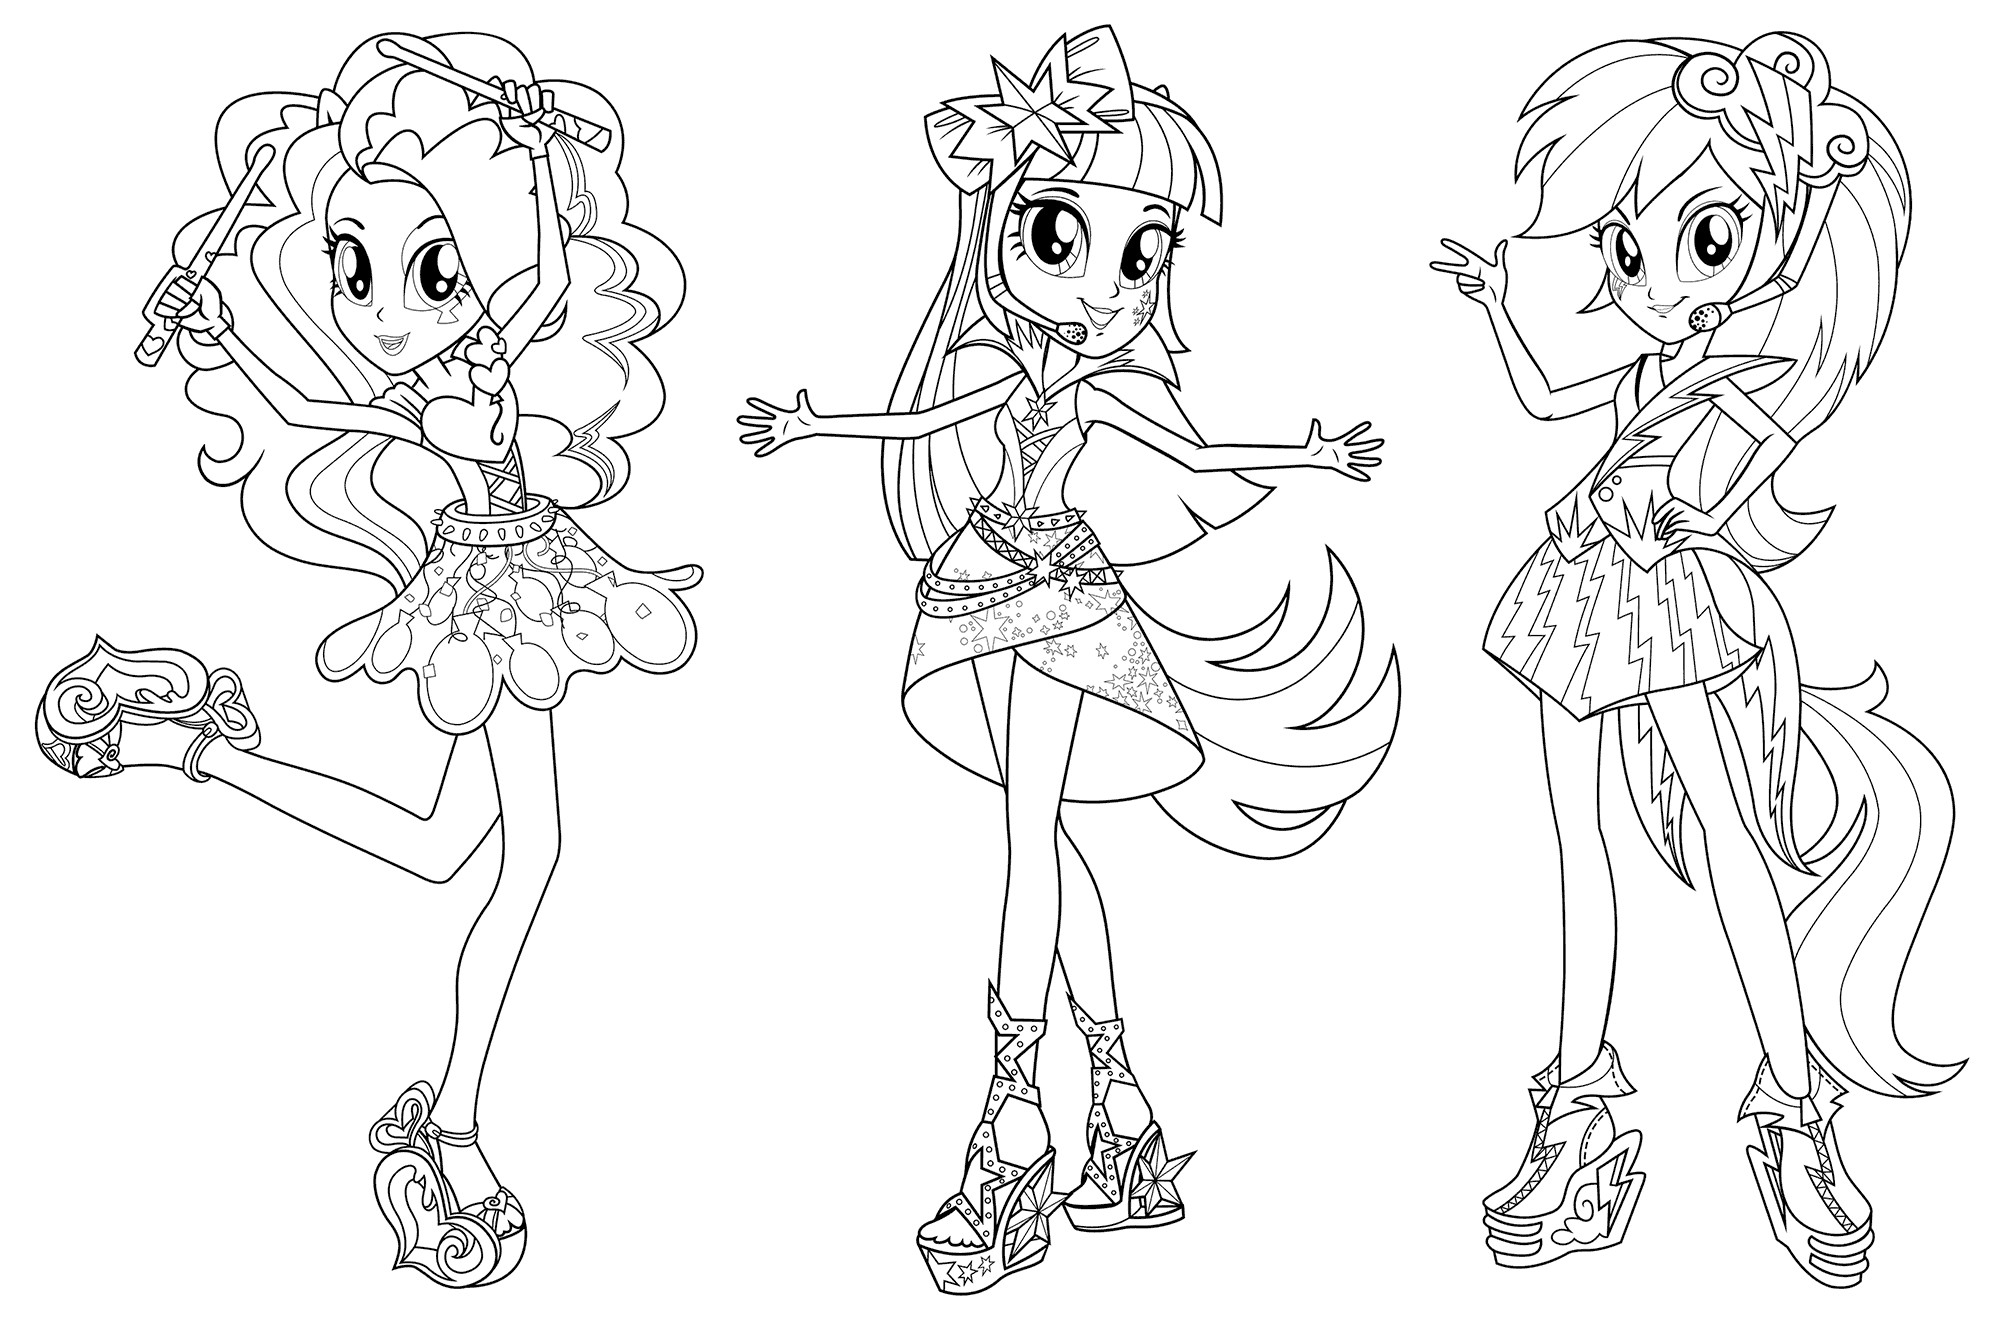 equestria girls mlp coloring page equestria girls coloring pages best coloring pages for kids mlp page equestria girls coloring